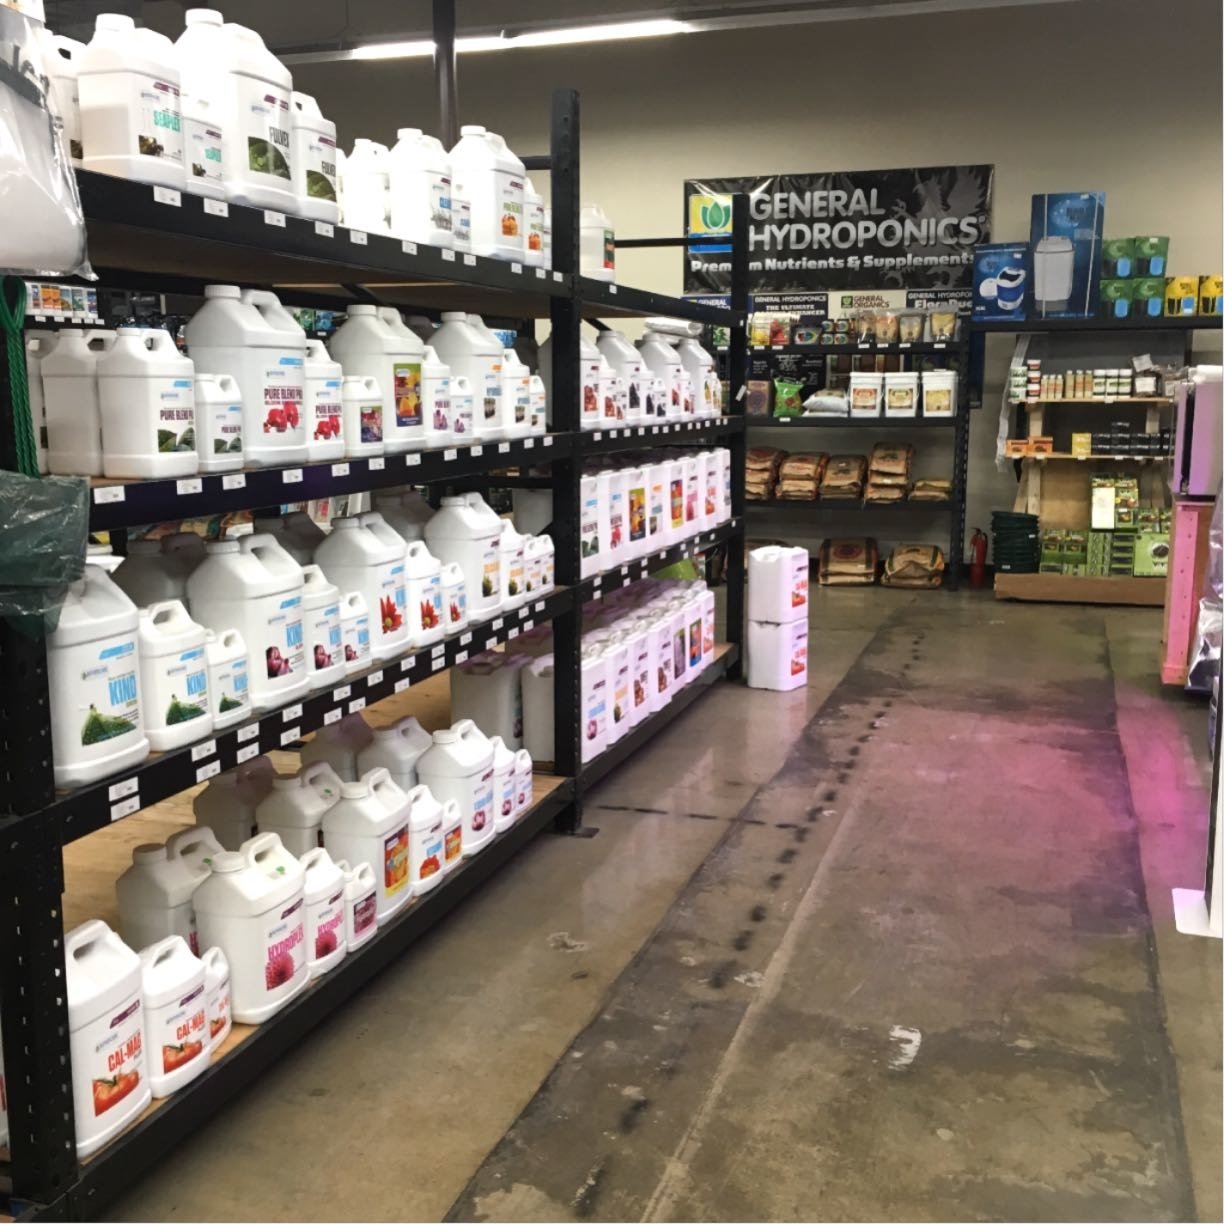 Grower Supply House image 53